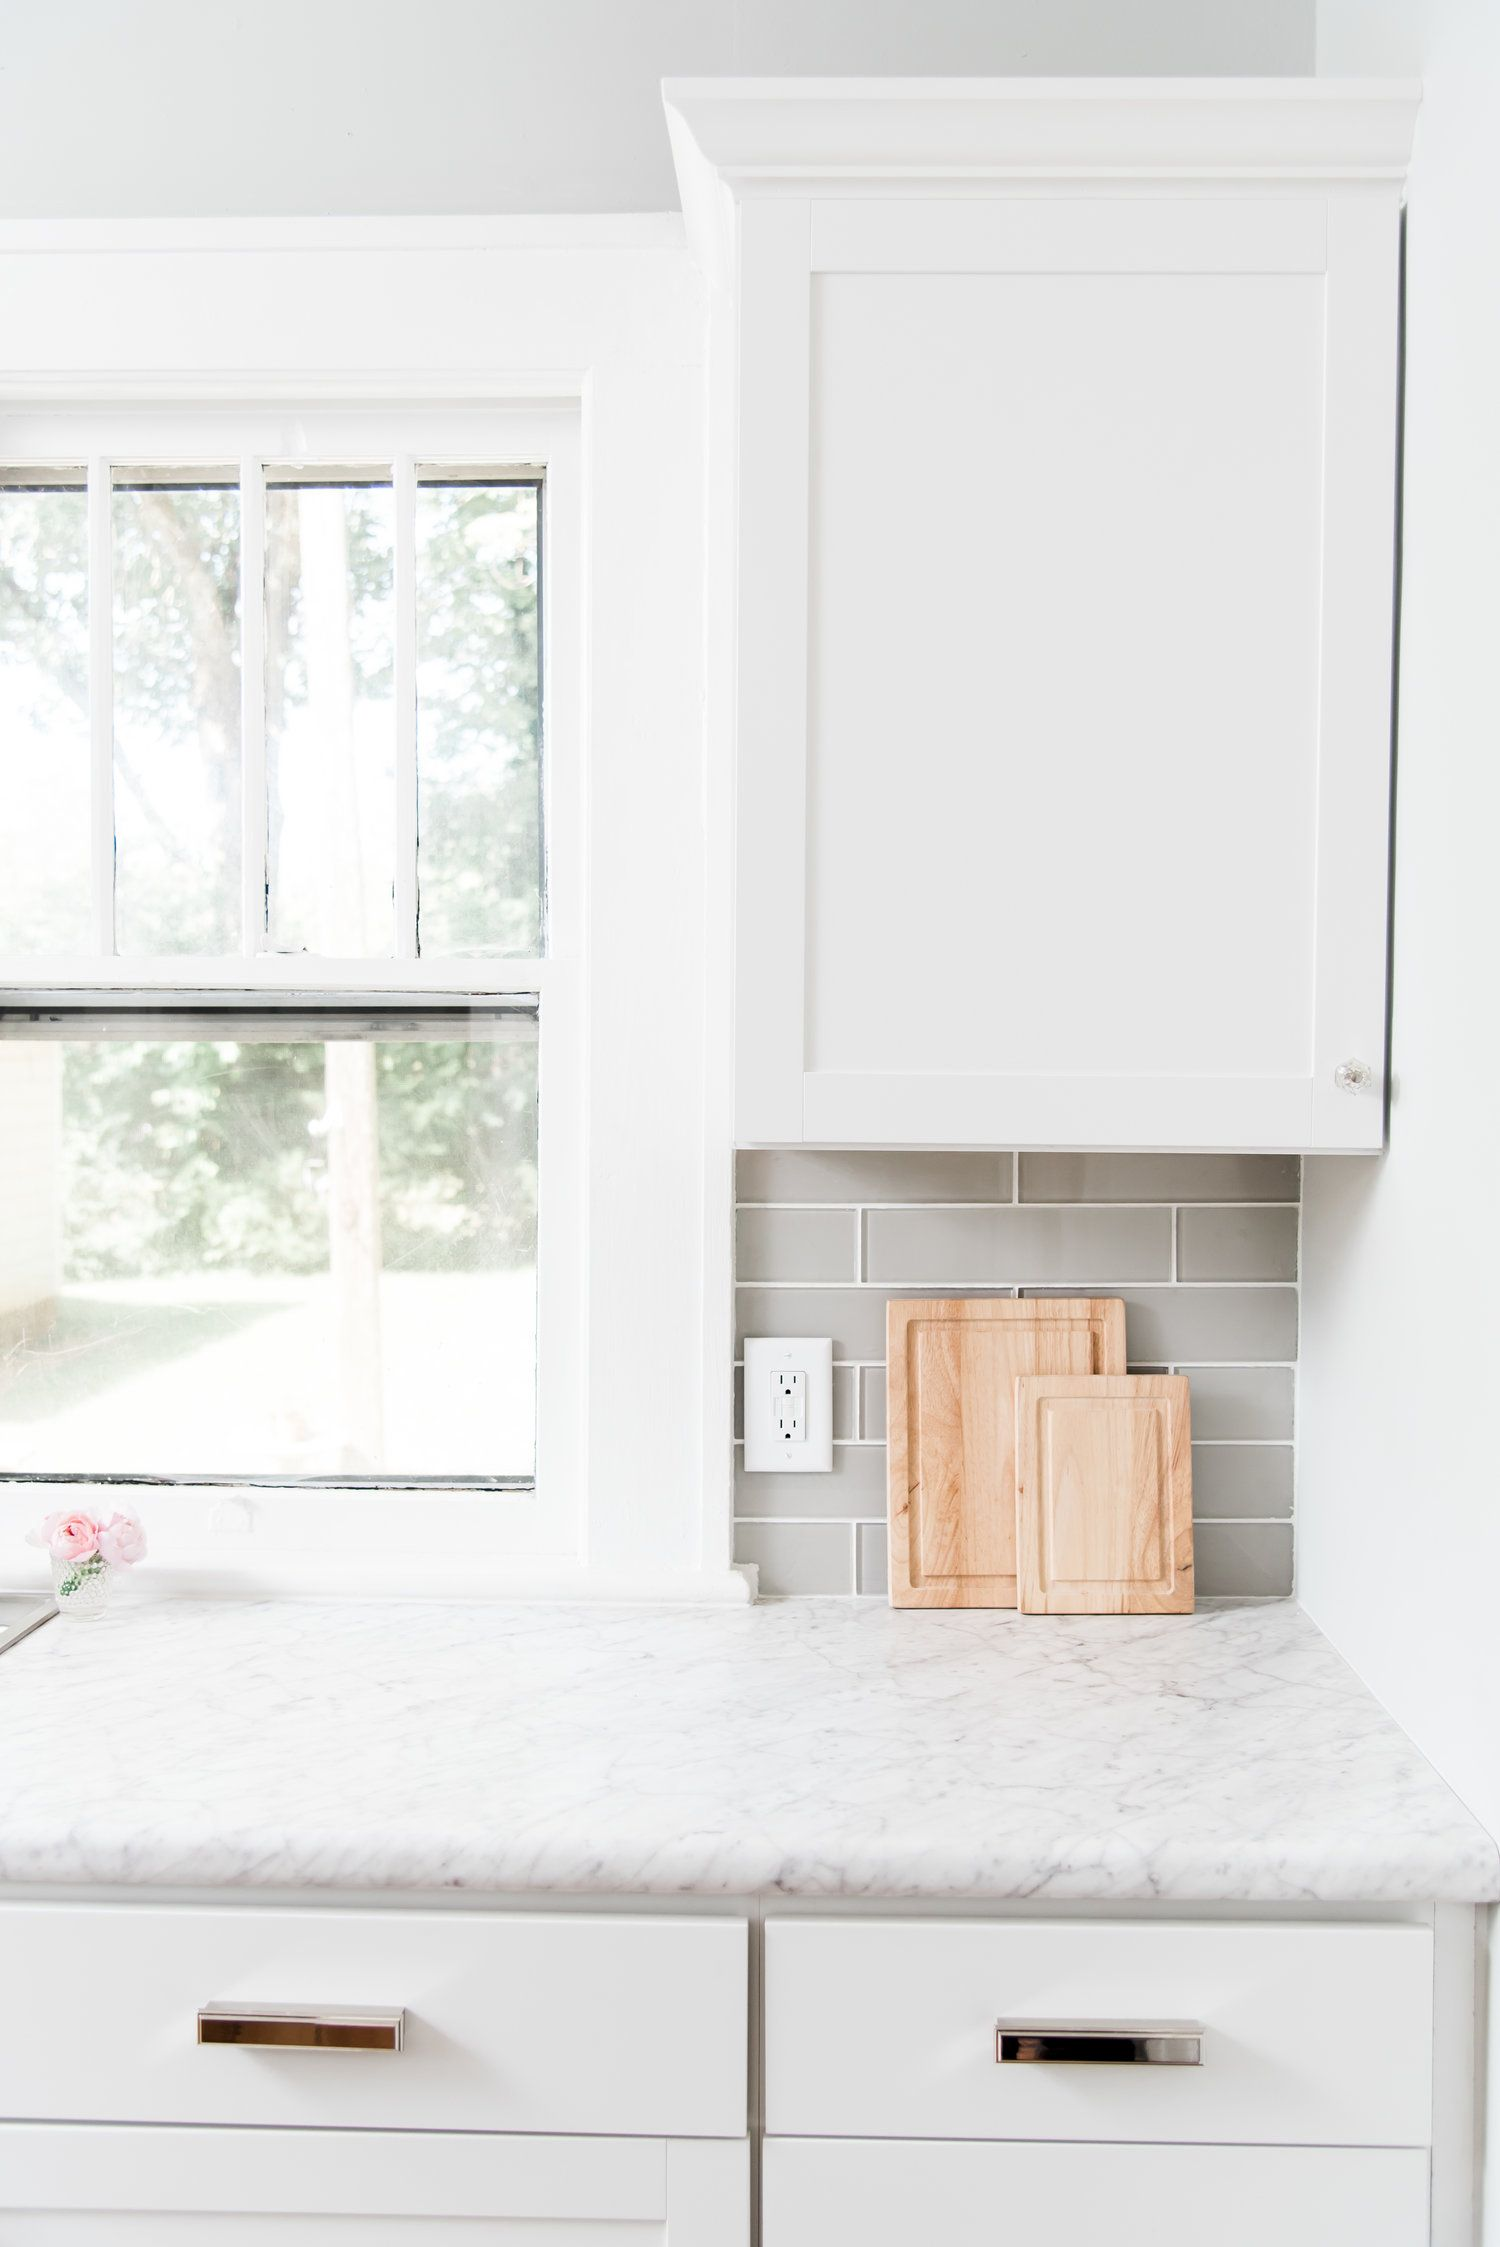 Best Lowe S Stock Cabinets Review White Shaker Cabinets 400 x 300